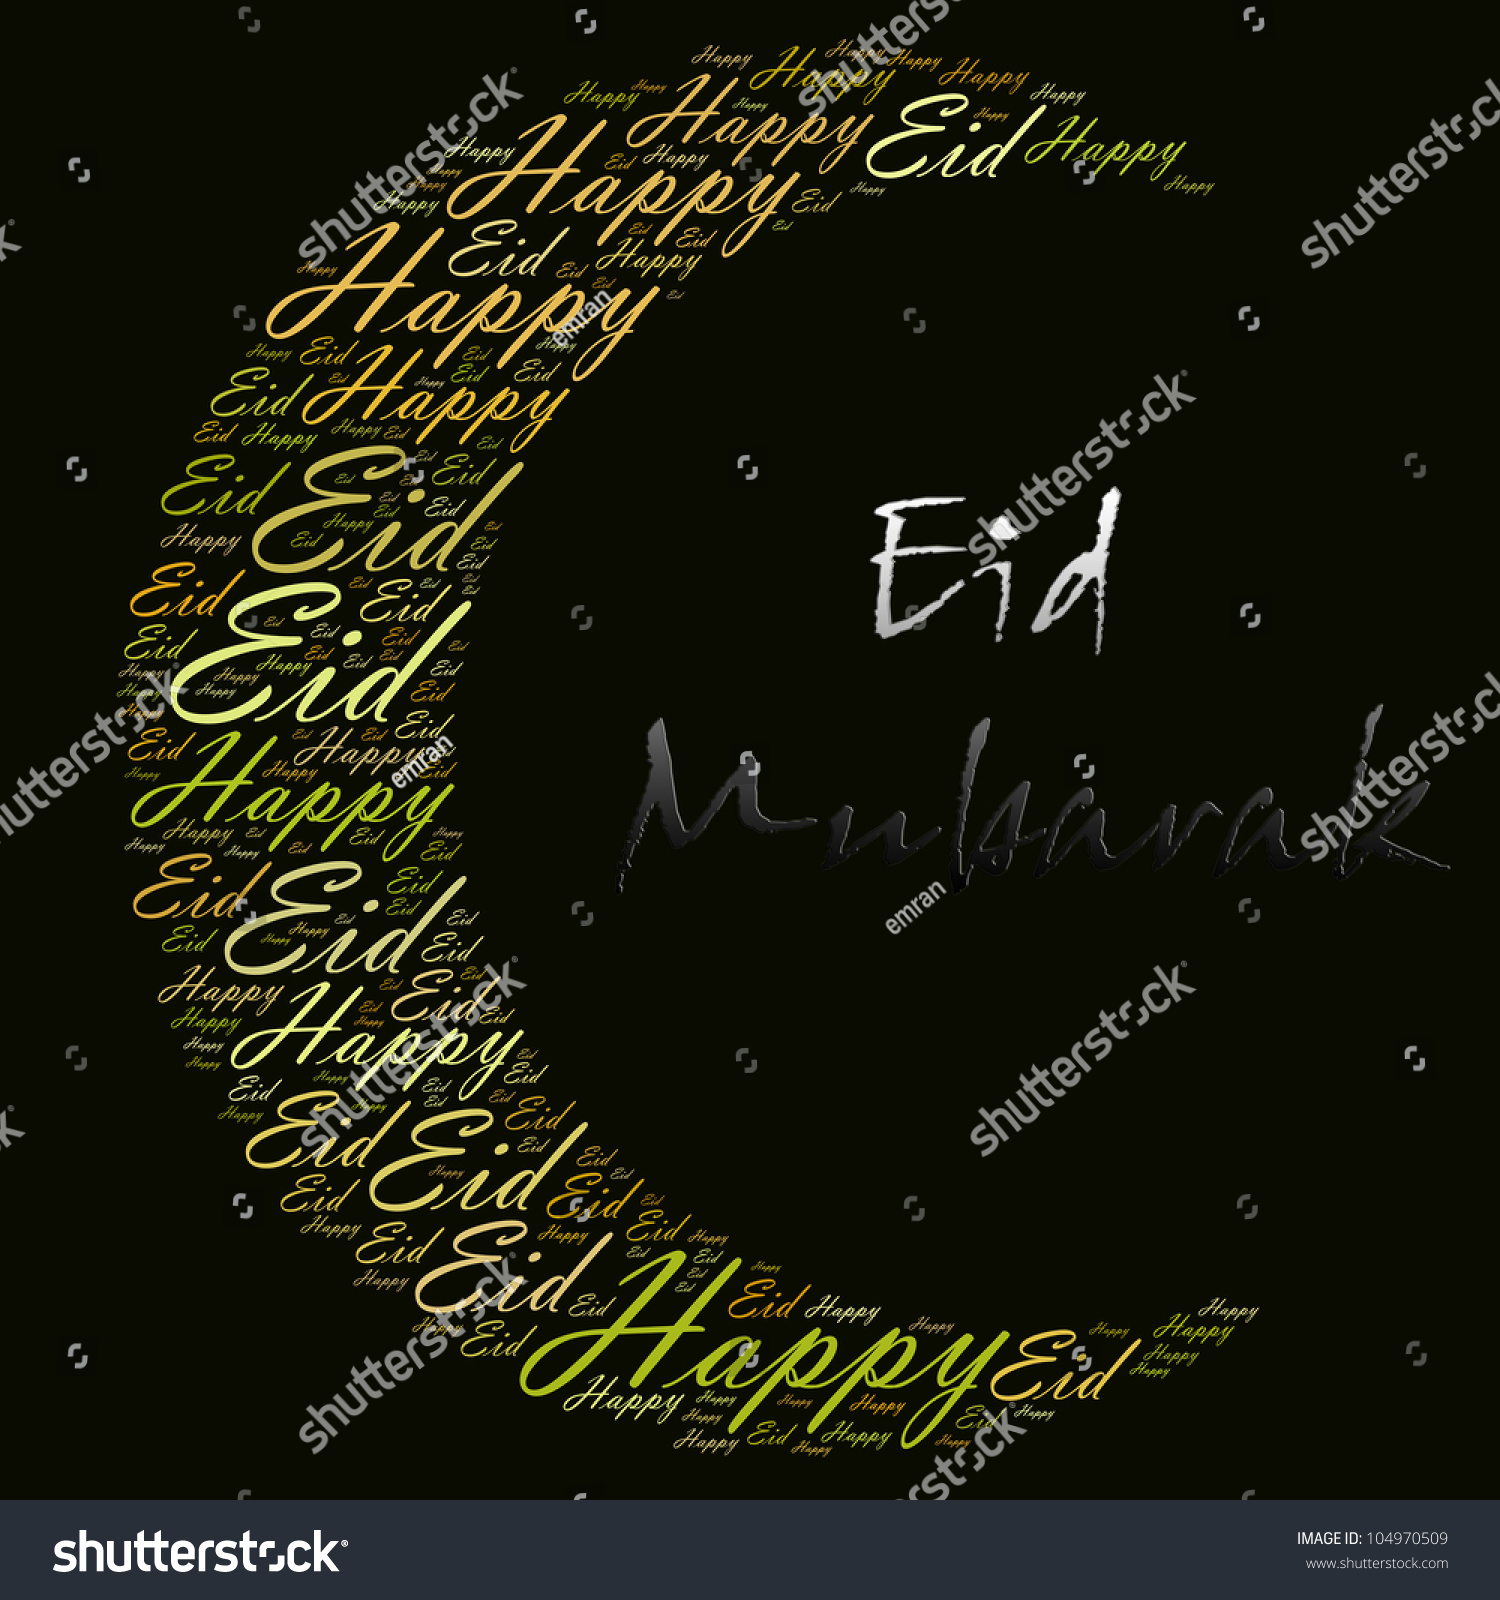 Happy eid greeting word cloud composed stock illustration 104970509 happy eid greeting word cloud composed in the shape of new moon crescent eid is m4hsunfo